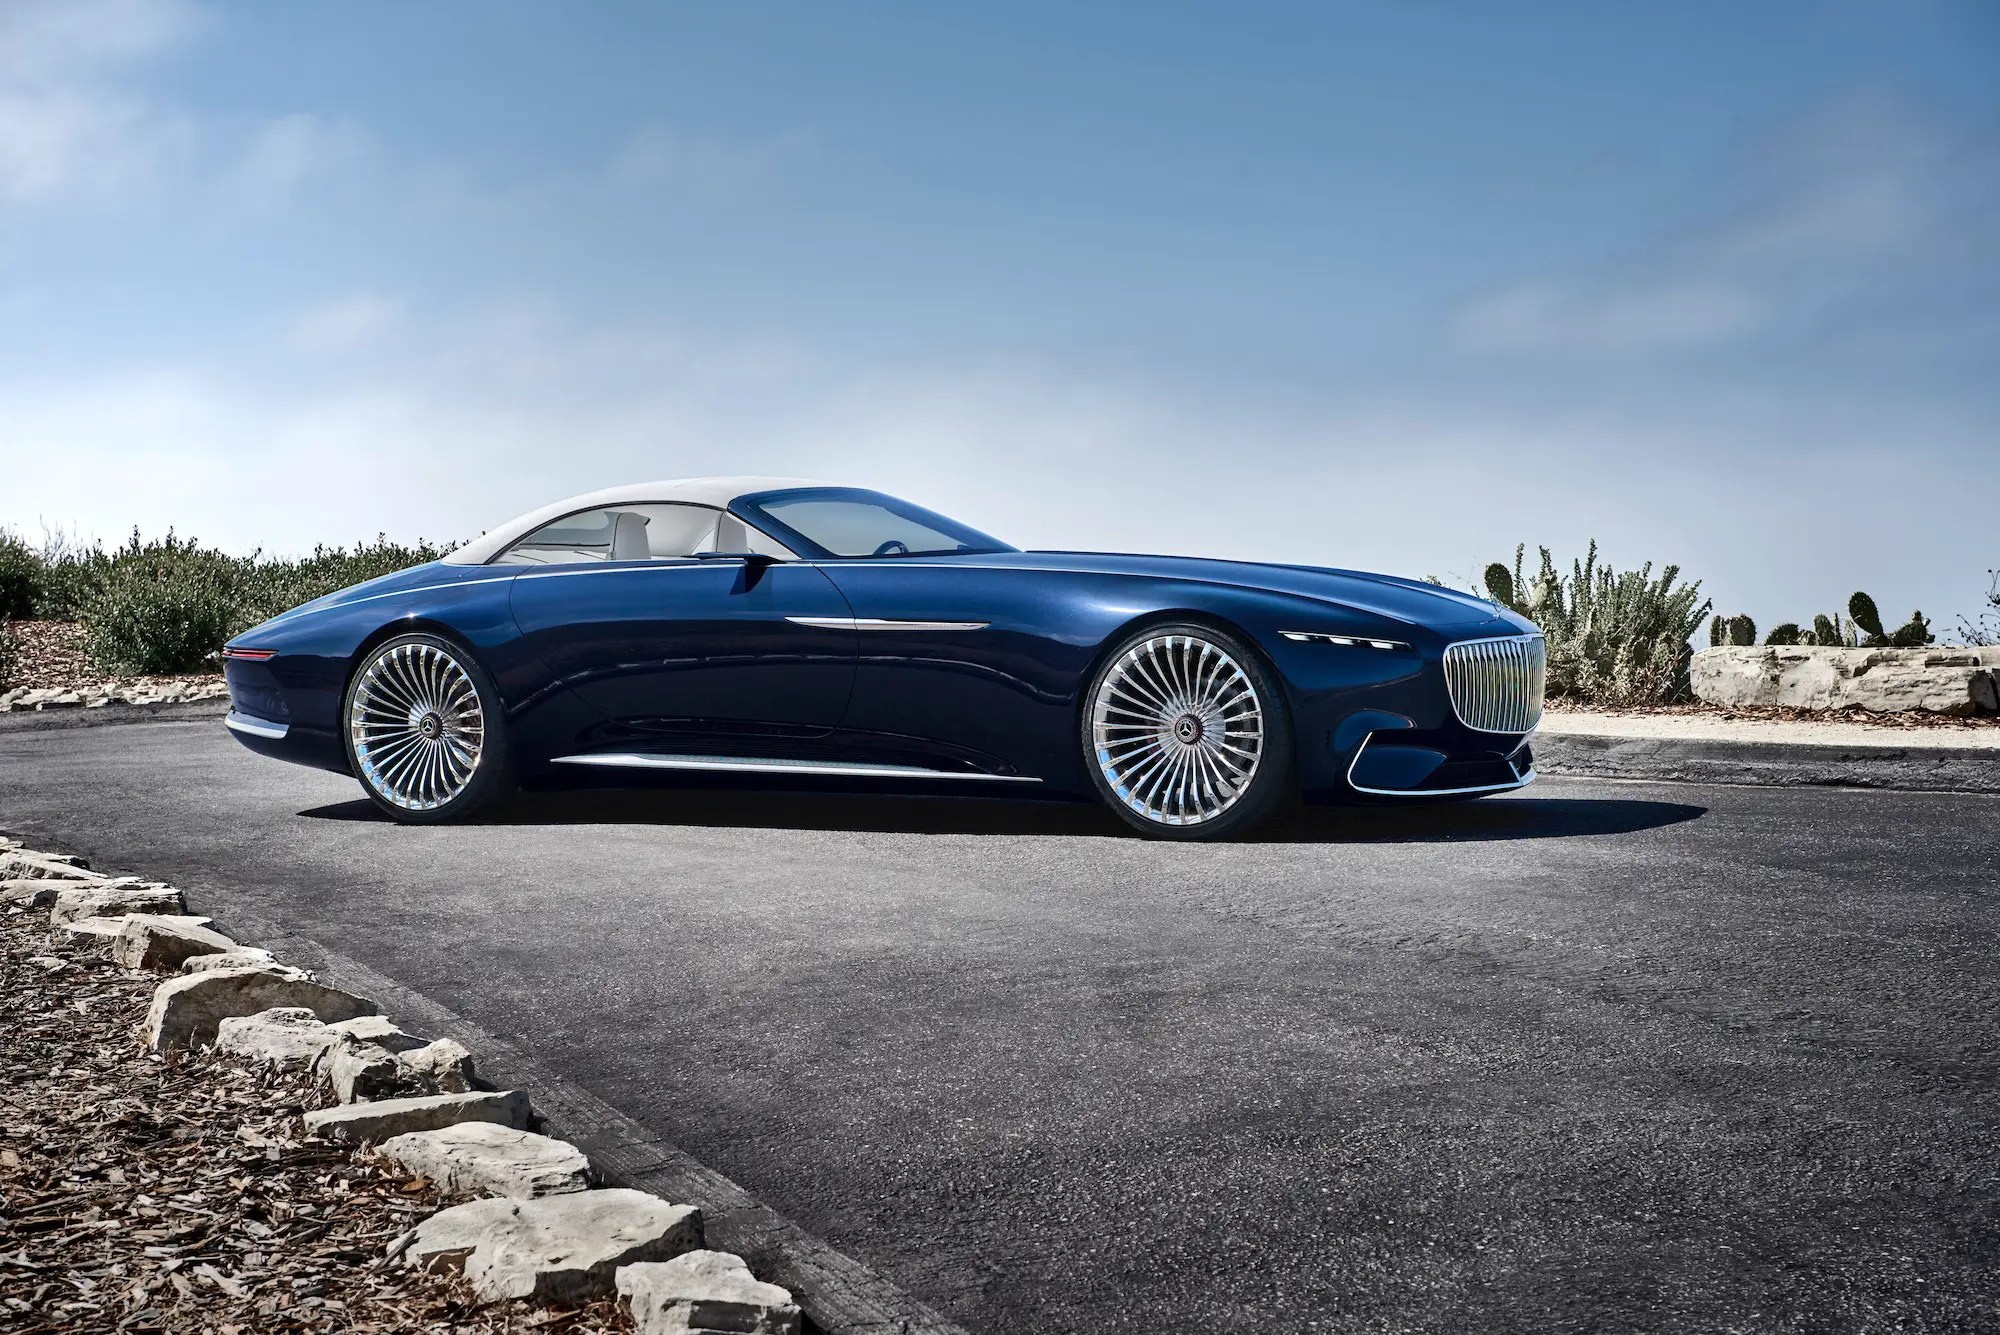 Mercedes Maybach Vision Mercedes Maybach 6 Cabriolet Is The Future Of